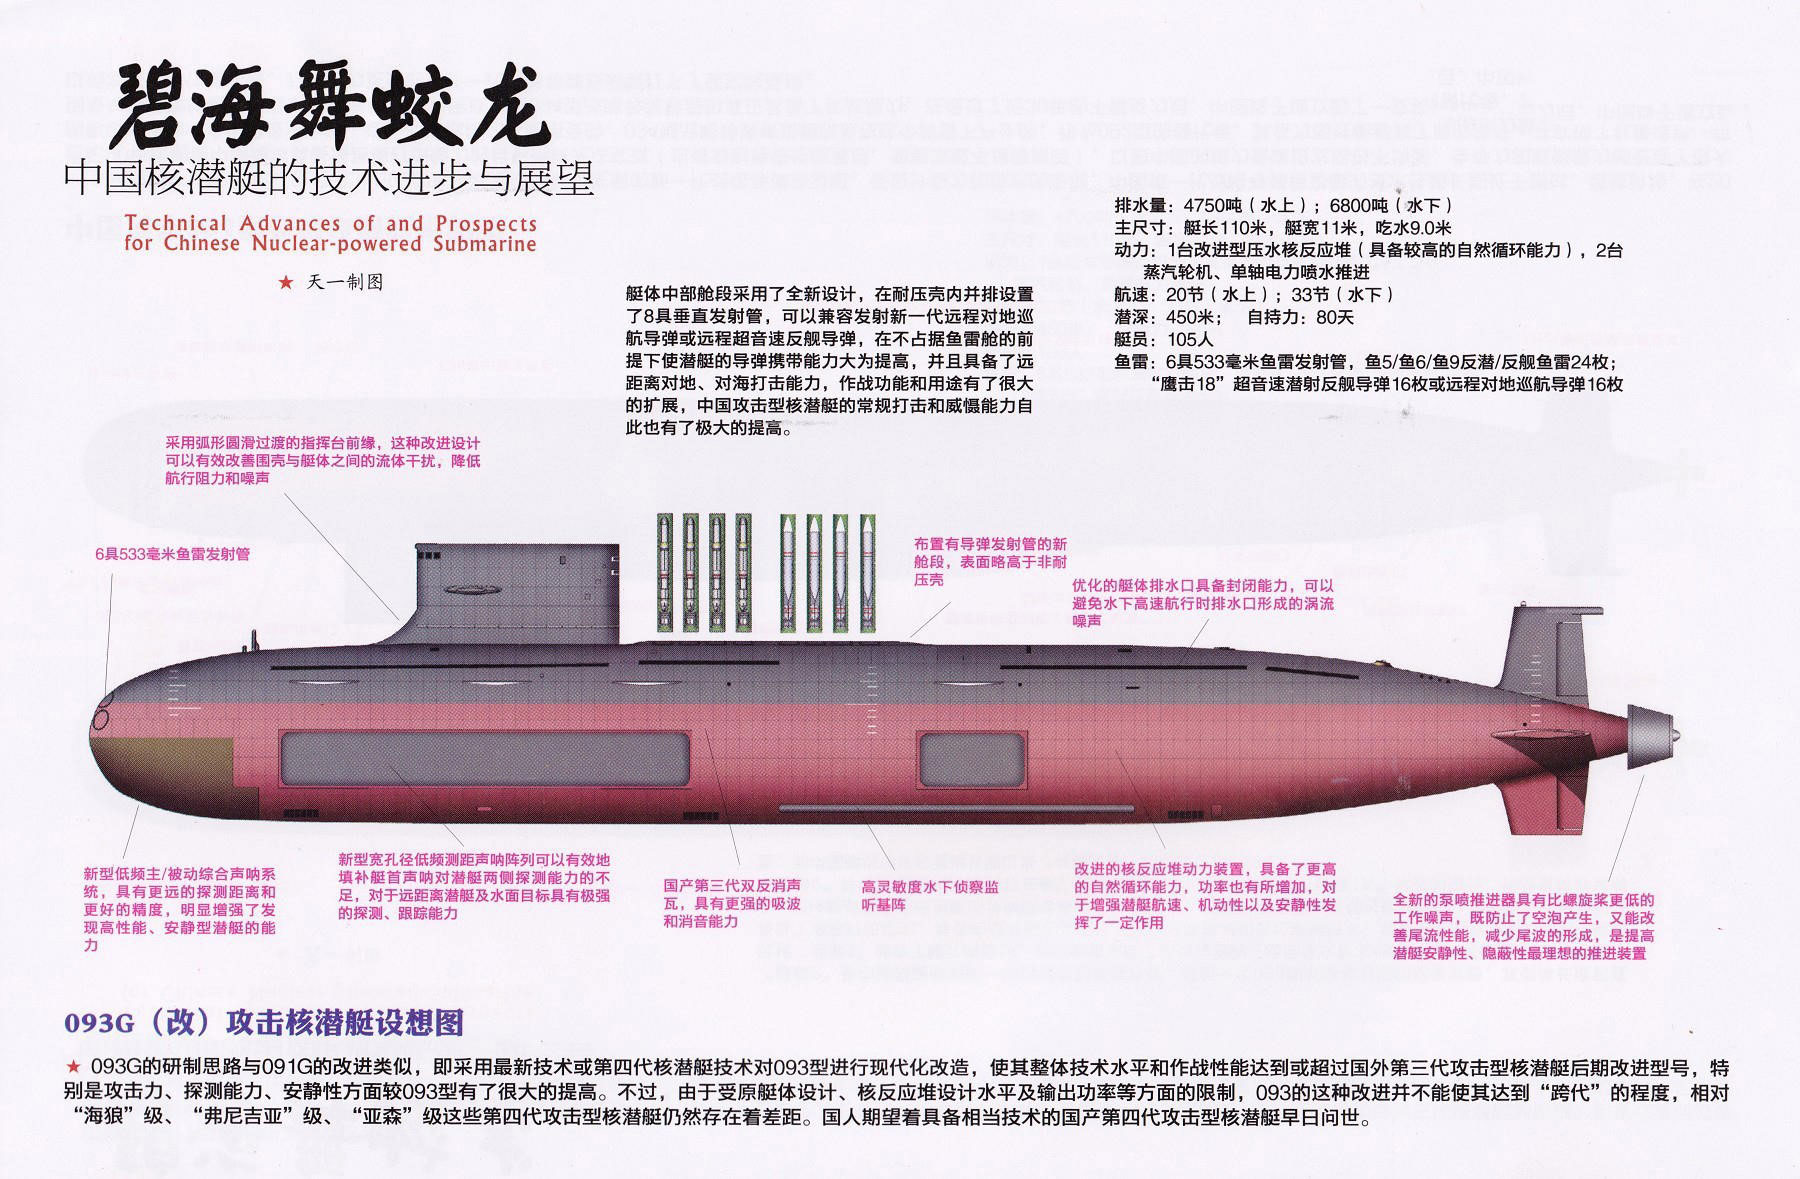 """A diagram of a variant of the Type 093 submarine from the Chinese state-affiliated magazine """"Shipborne Weapons (舰载武器)"""""""